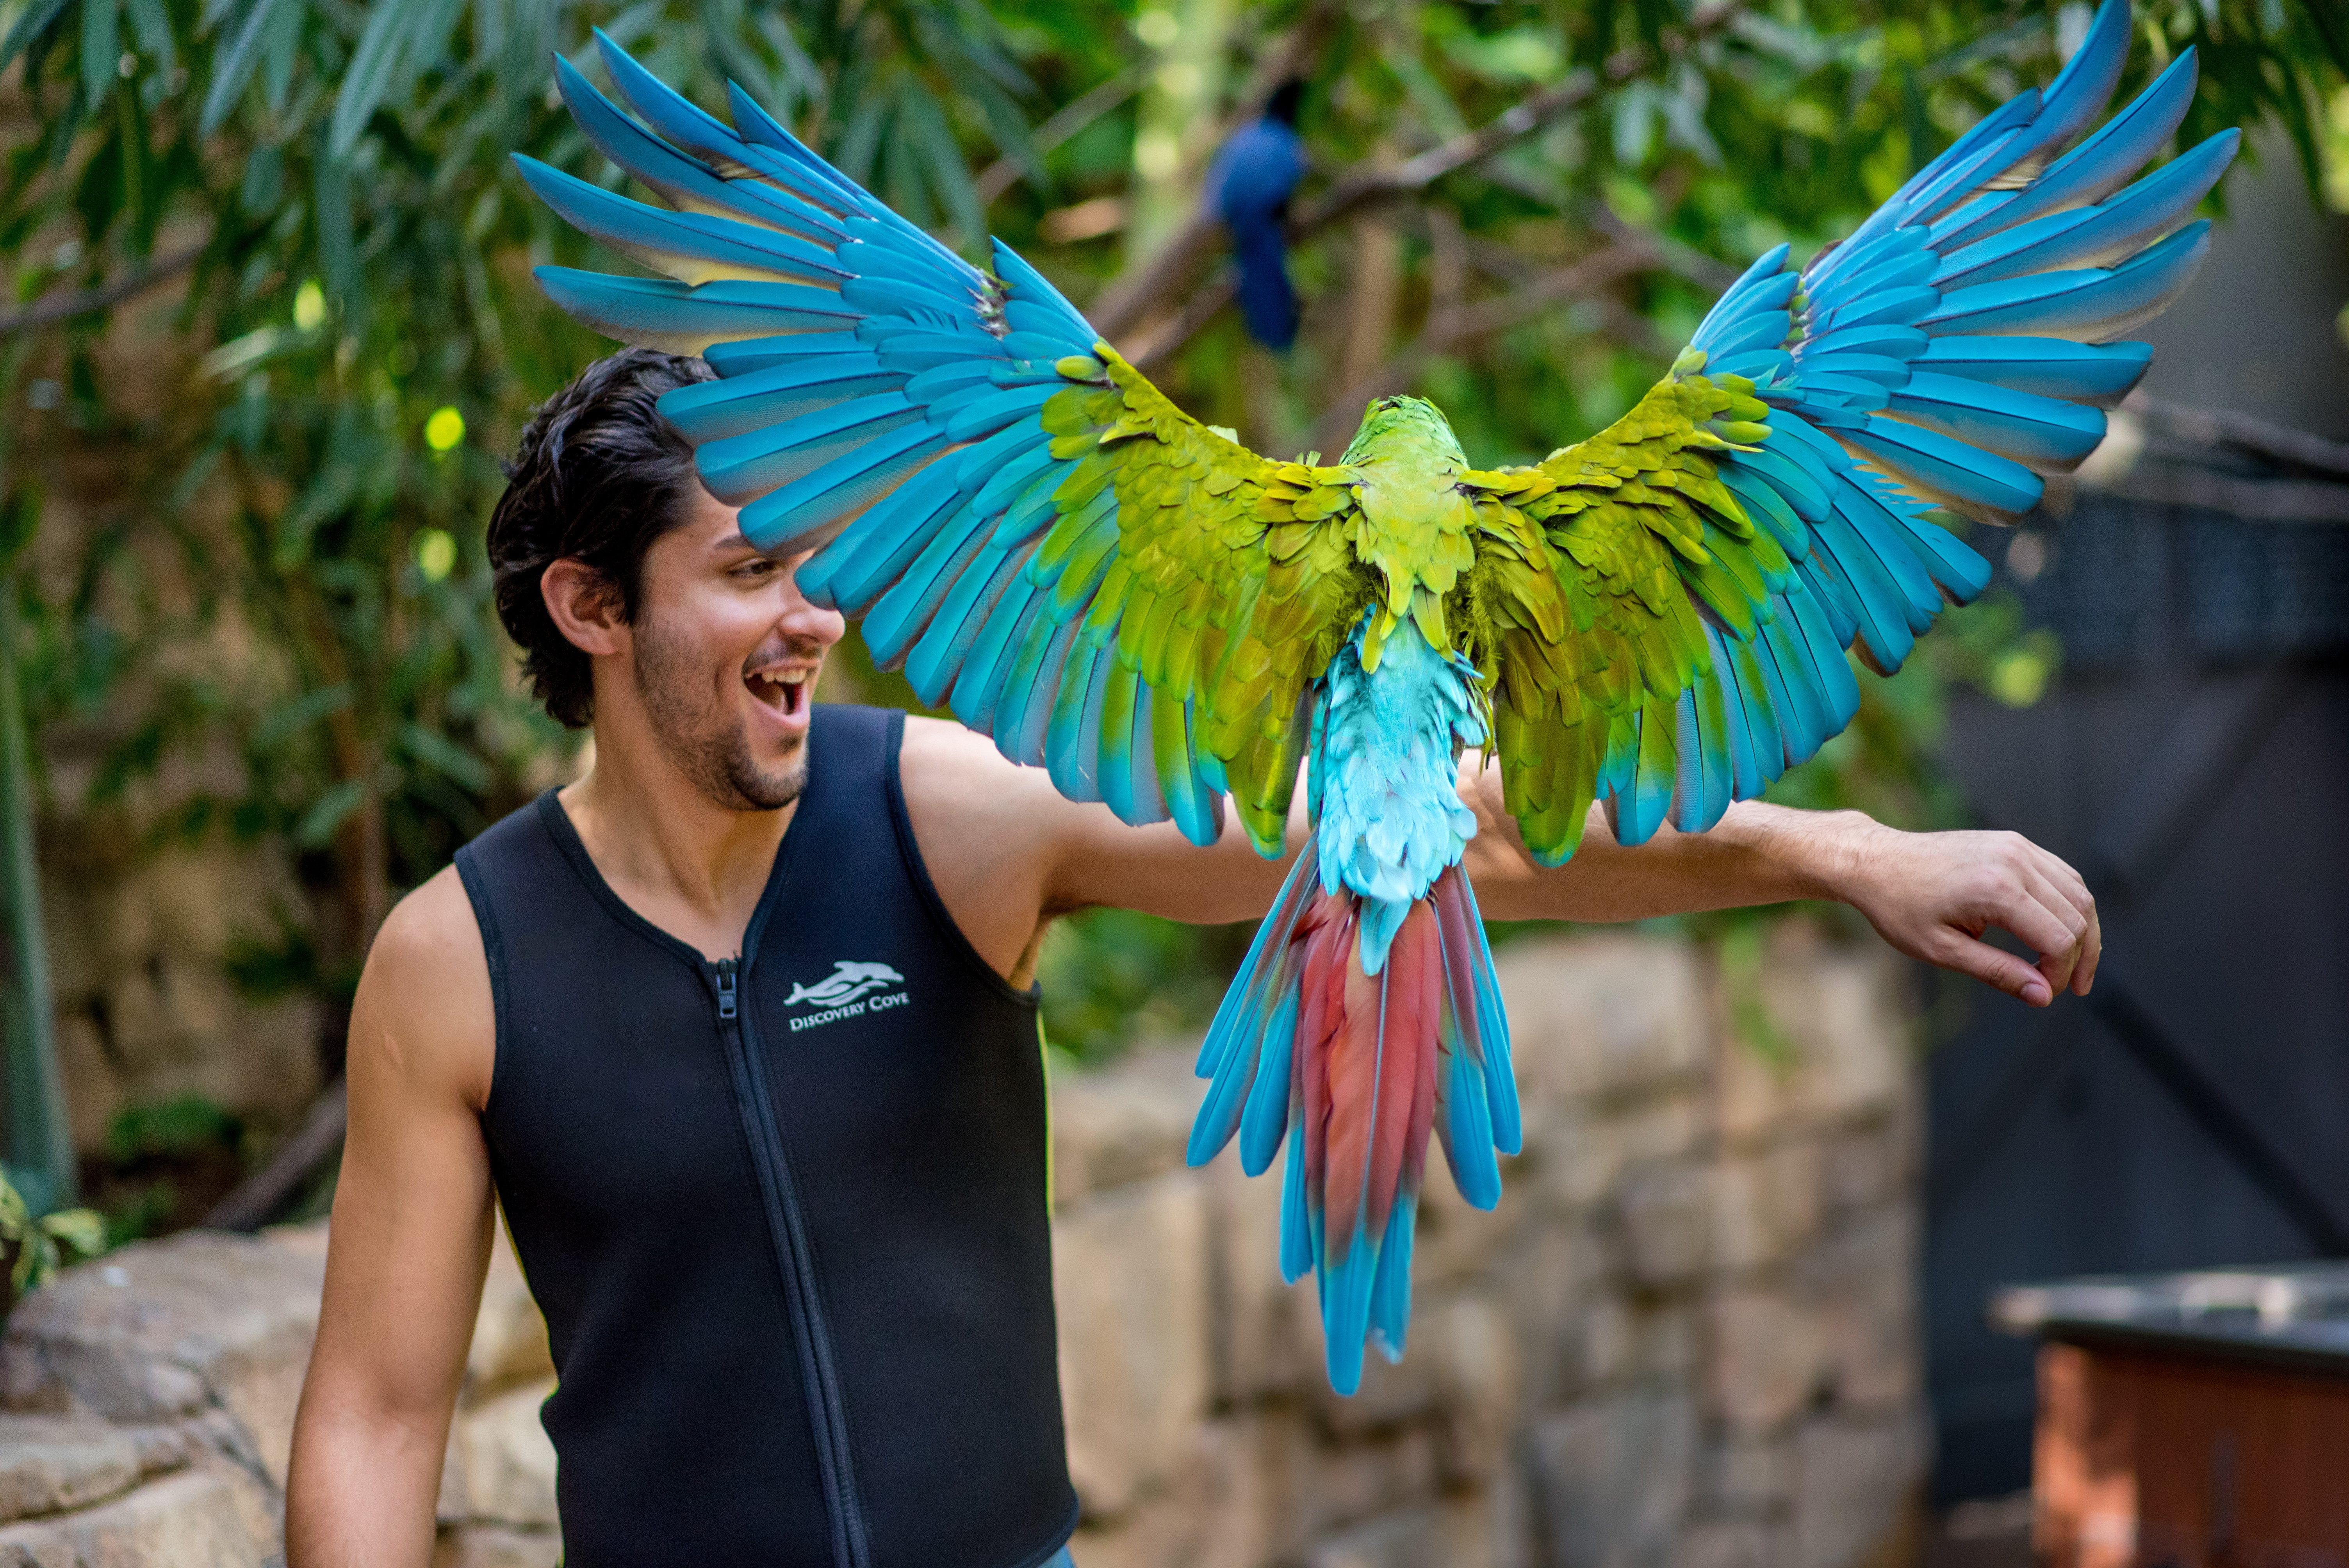 A parrot flies onto a guest's arm in the Aviary.